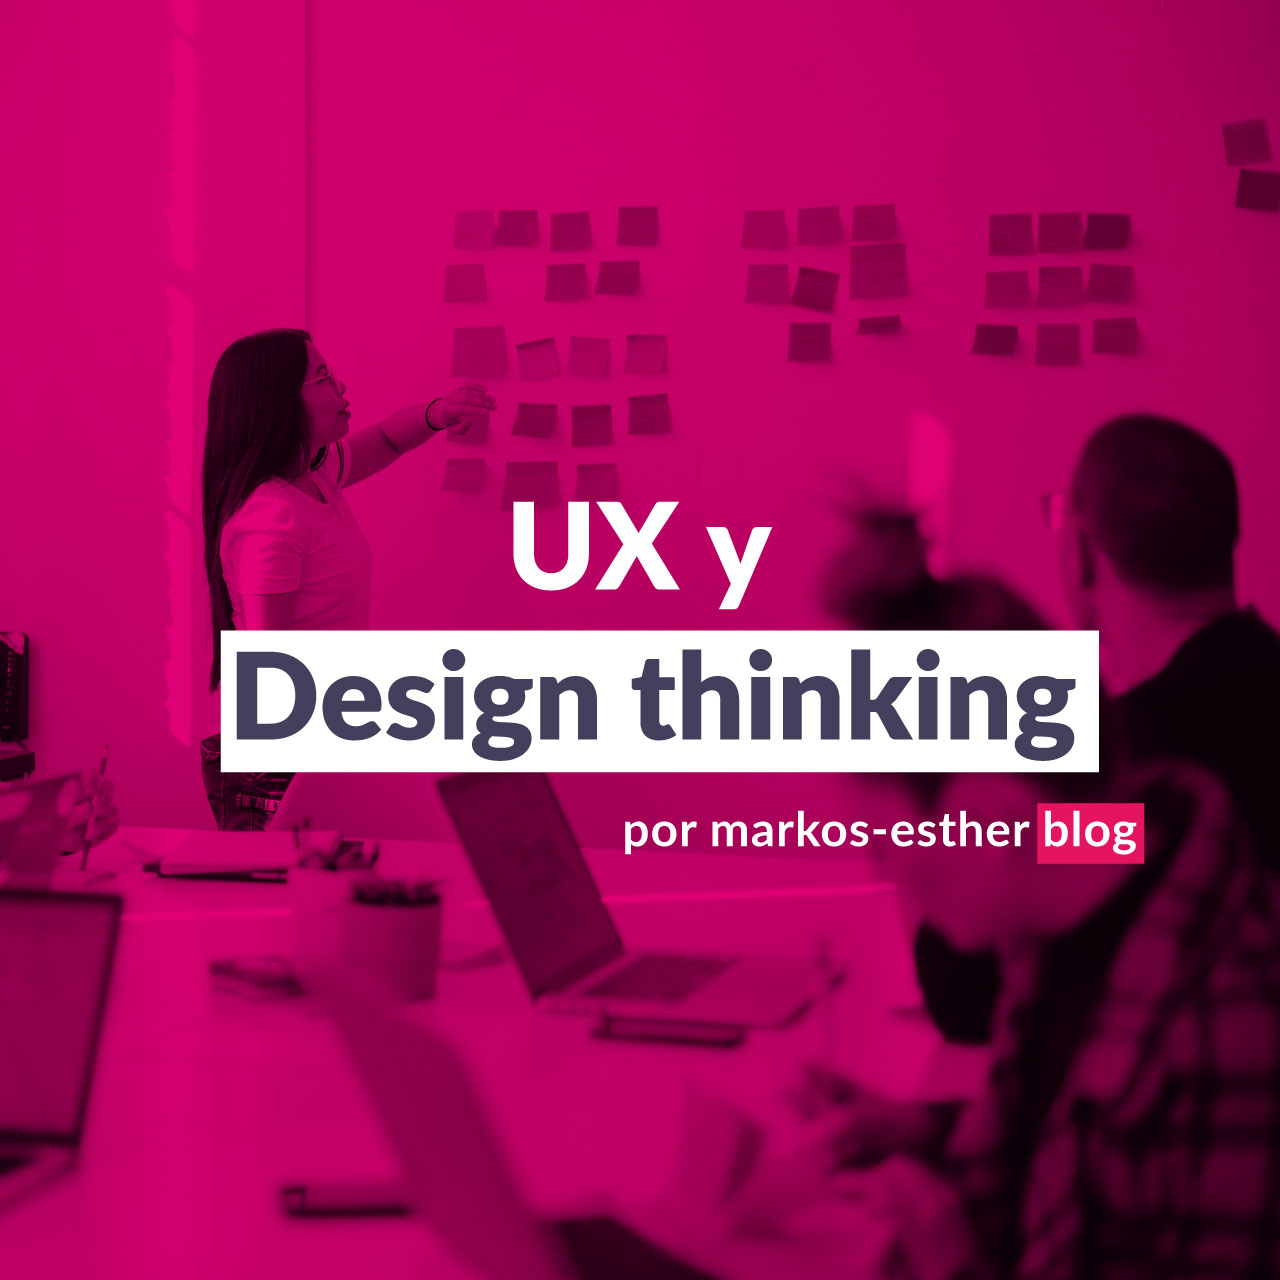 UX y Design thinking